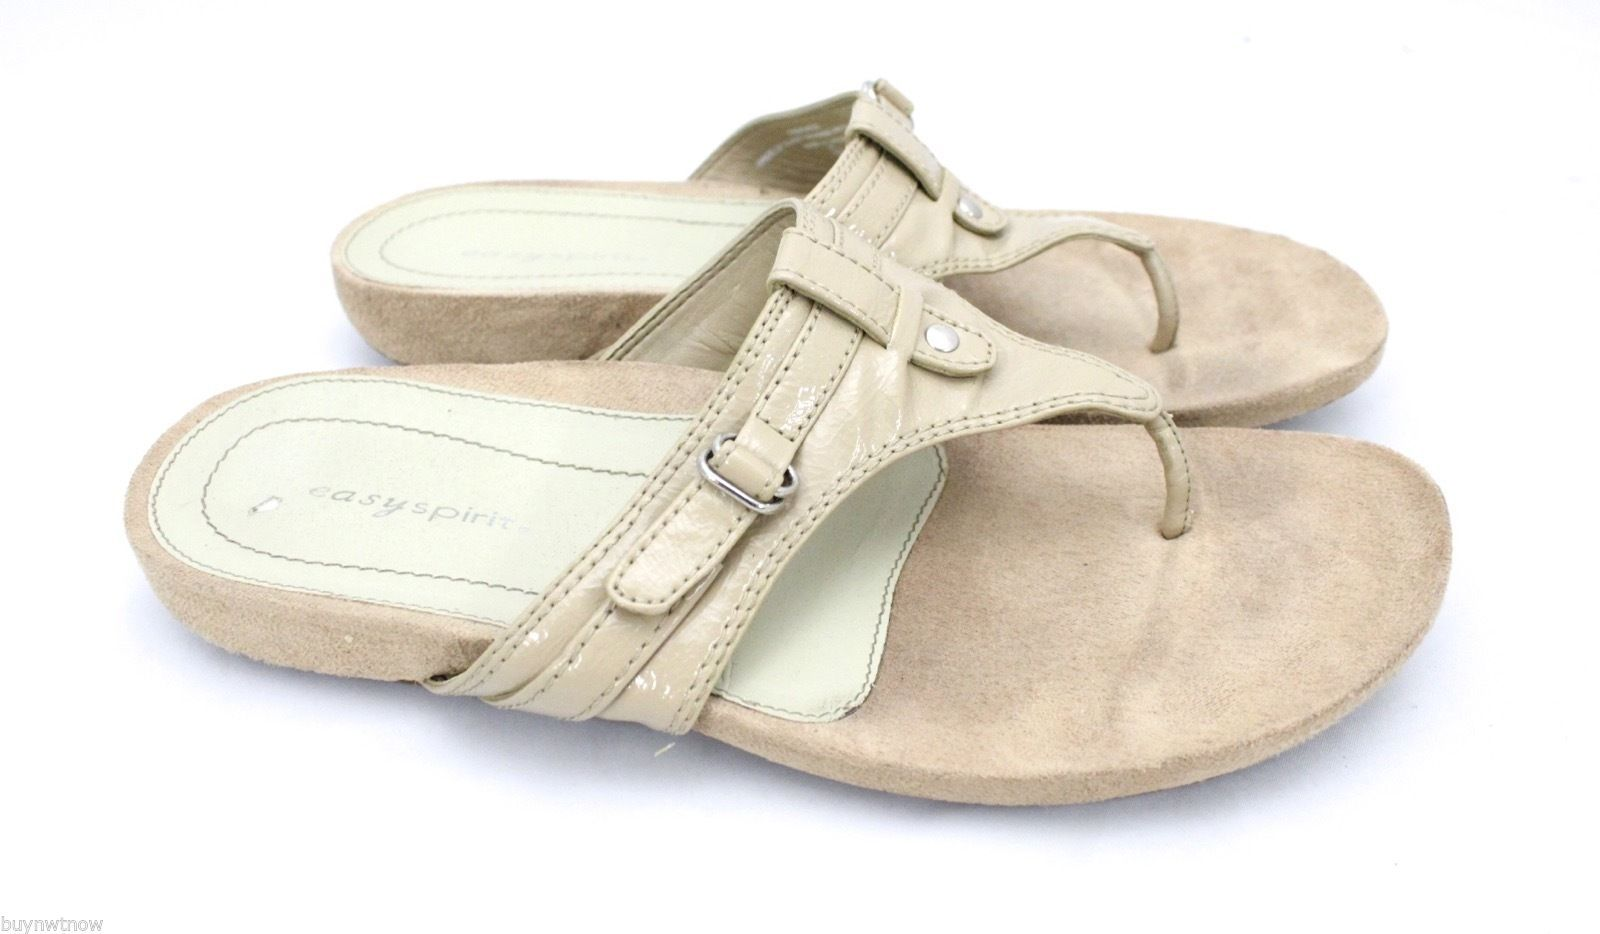 Easy Spirit Nude Patent Thong Sandals Flats 9M Geordie Flip Flop image 2